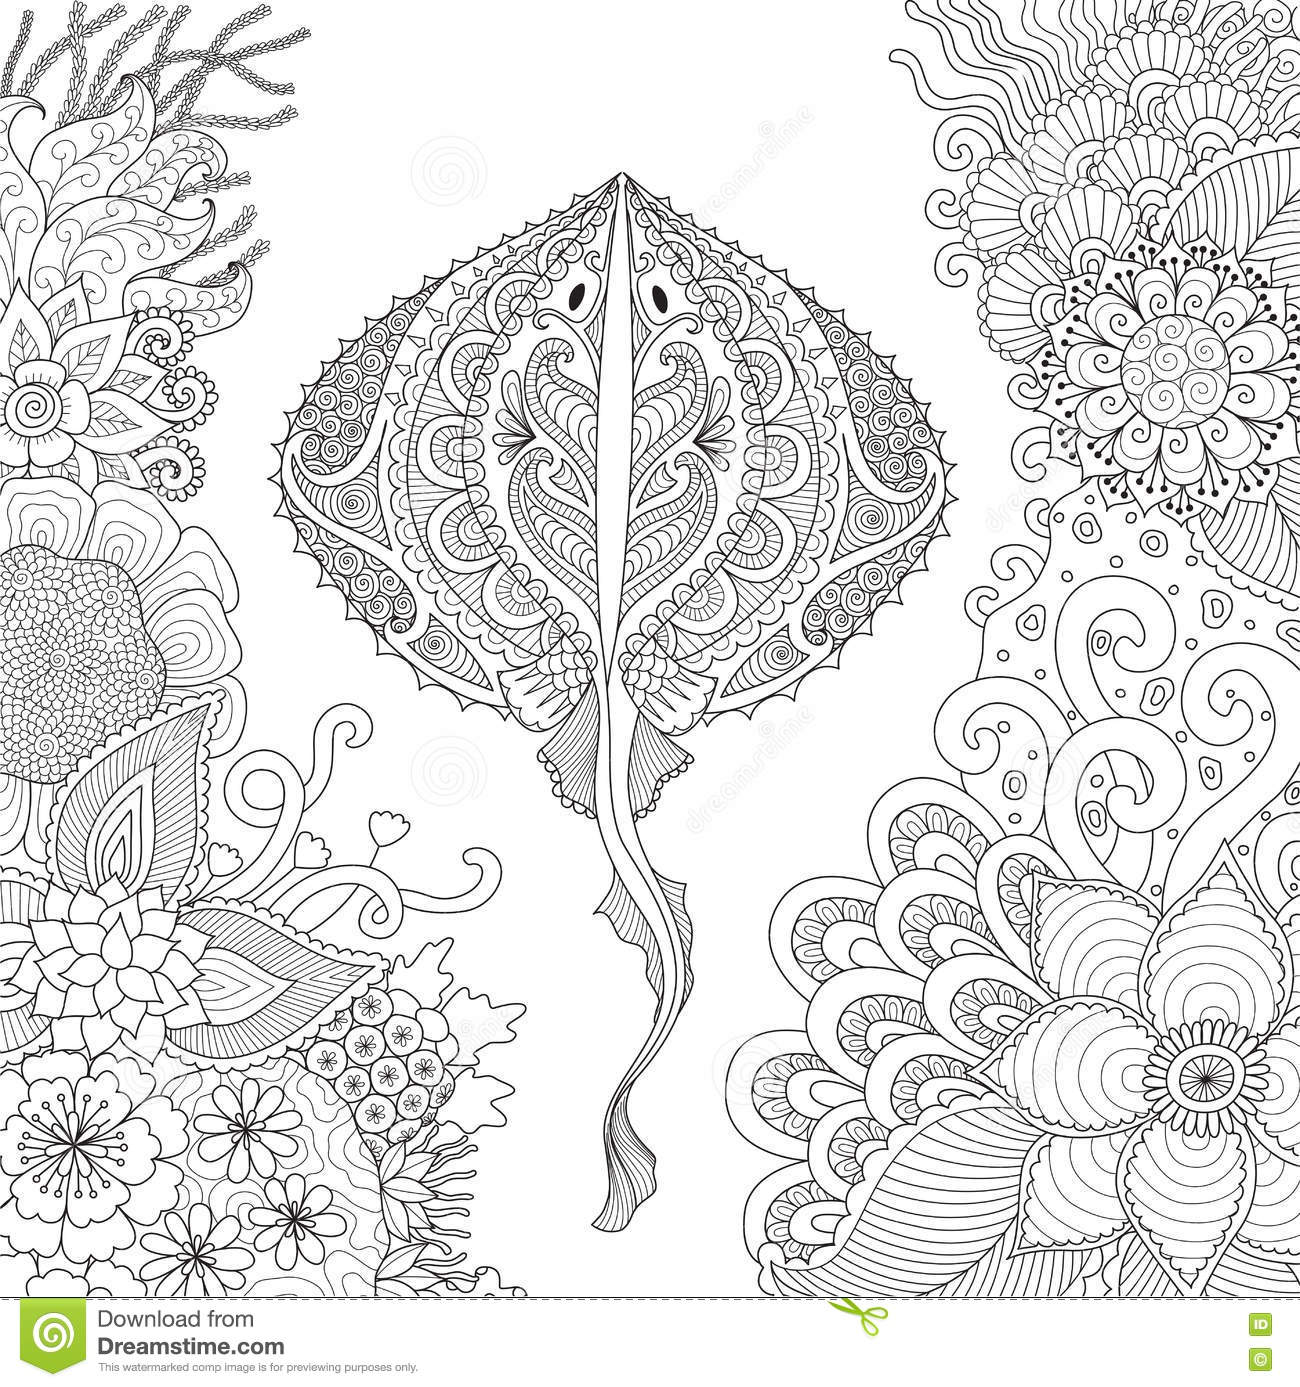 Royalty Free Vector Download Zendoodle Of Stingray Swimming Among Beautiful Corals Under Water World For Adult Coloring Book Pages